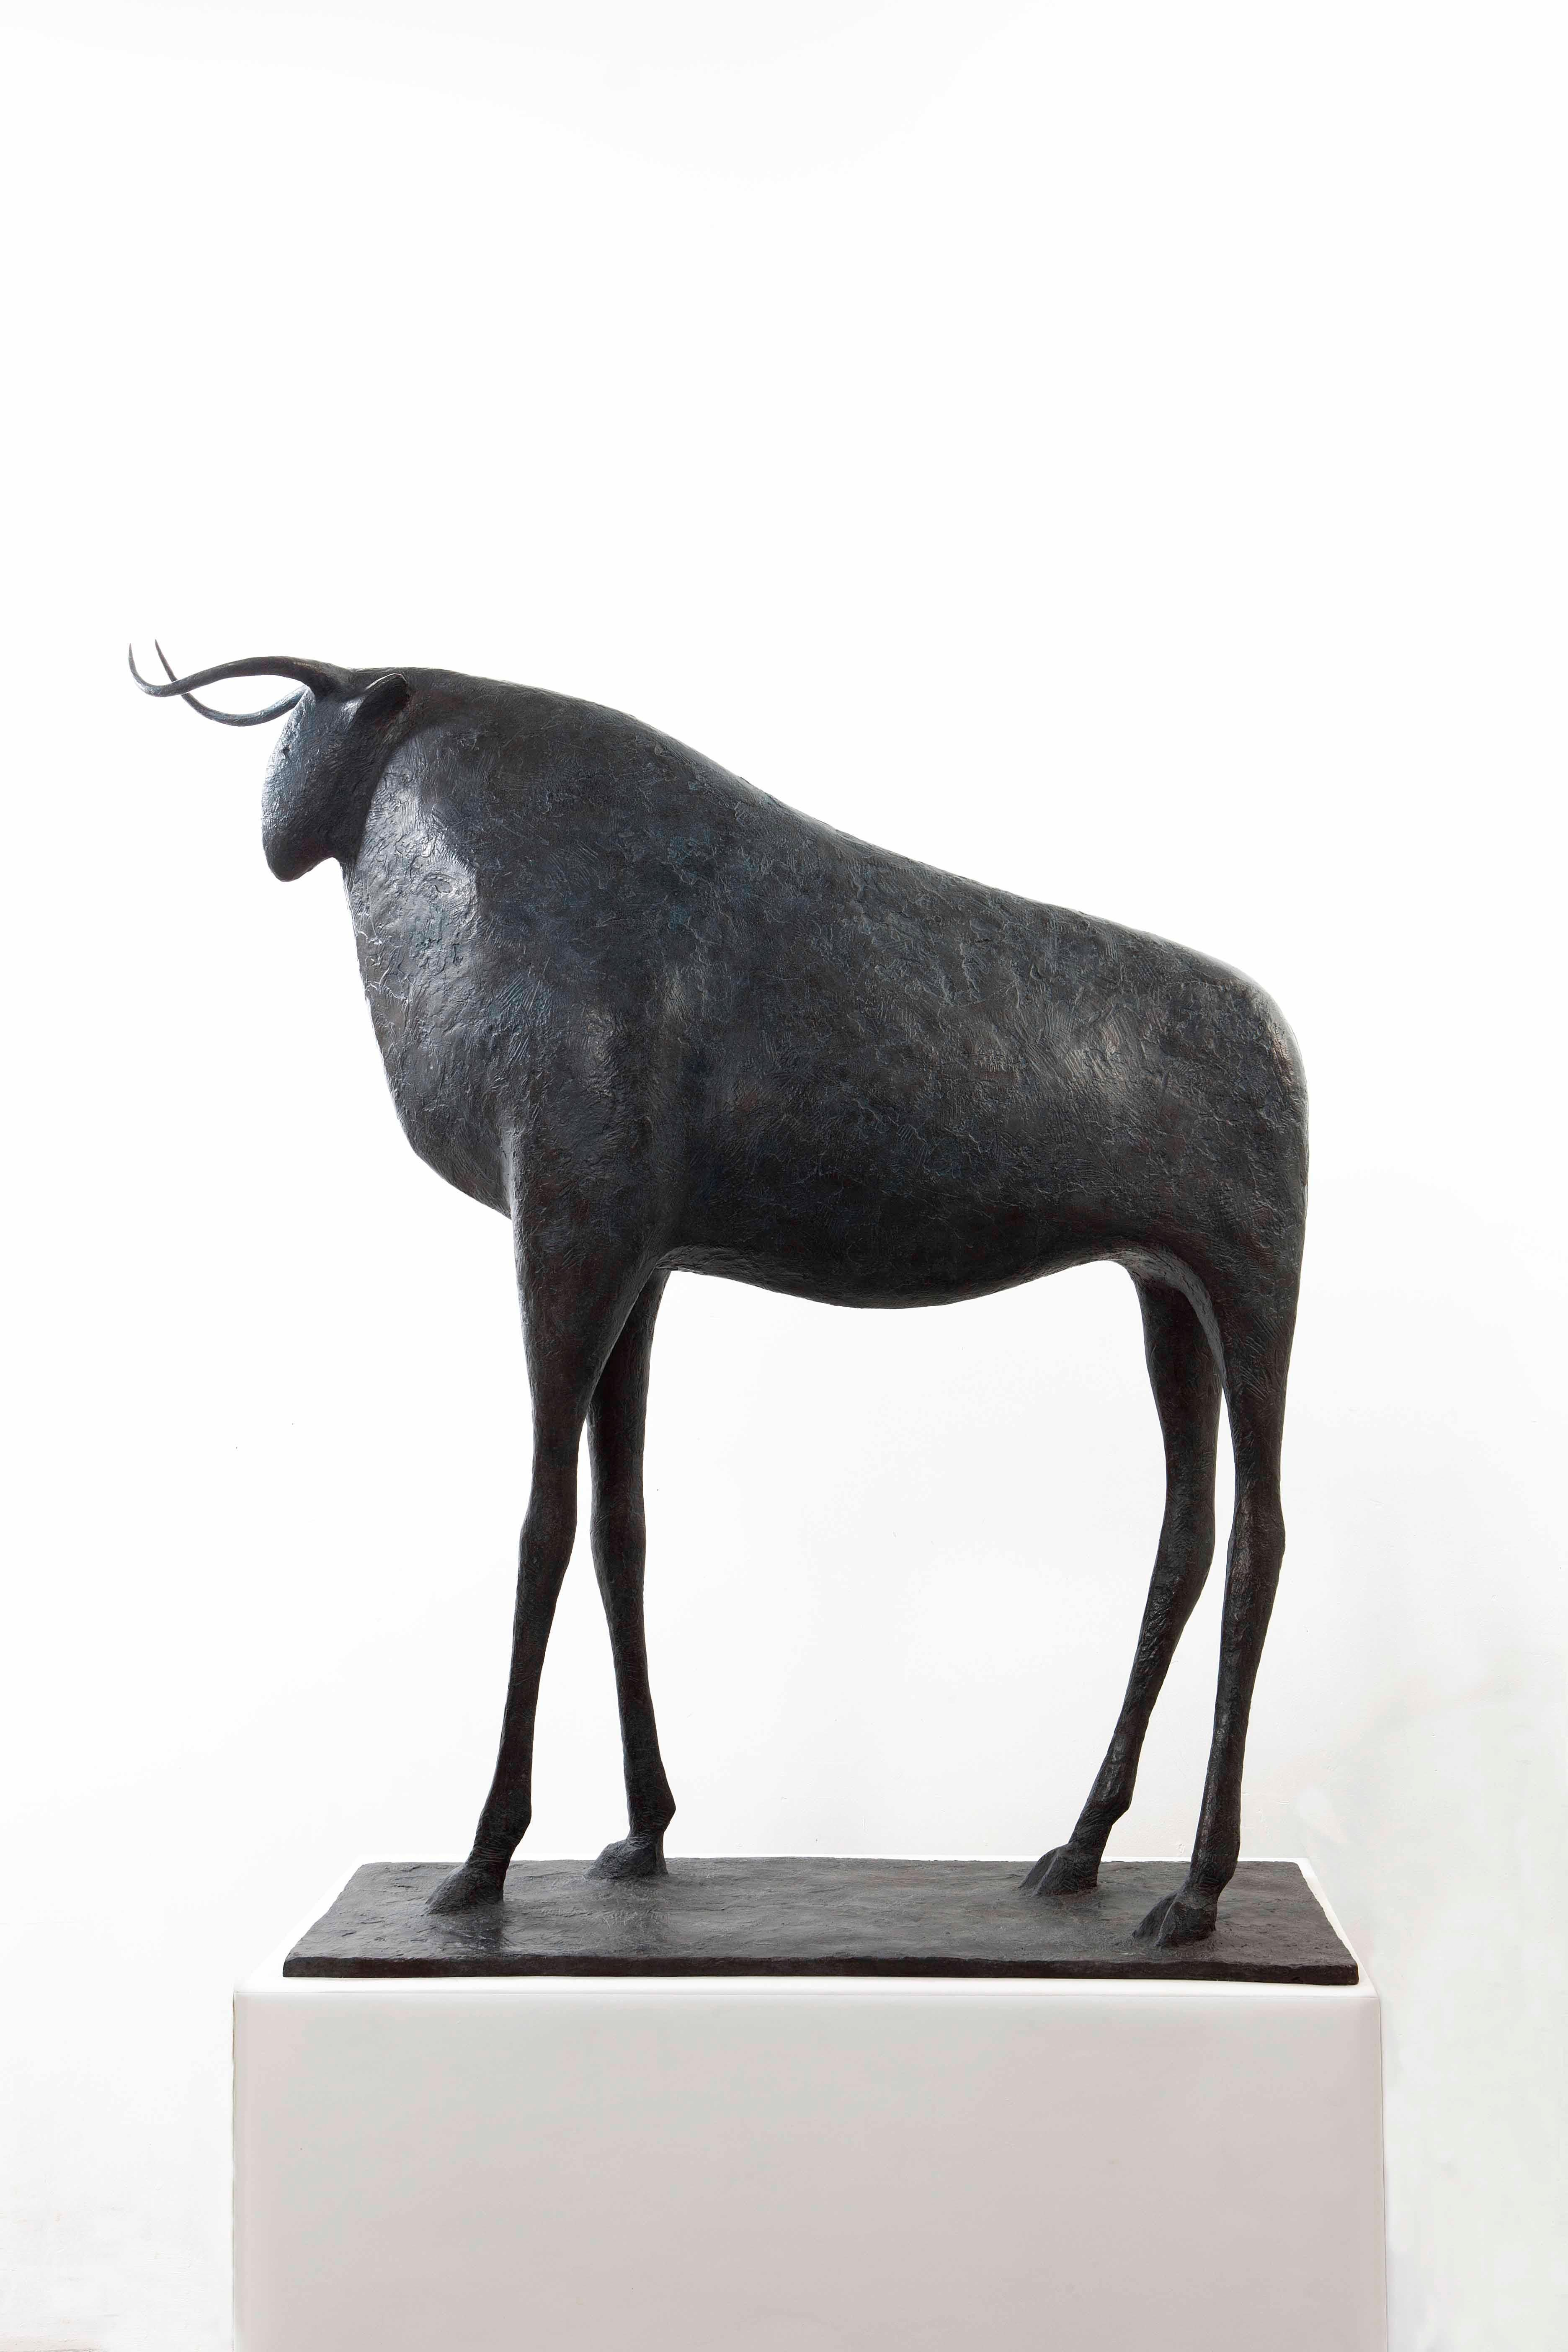 Large Bull by Pierre Yermia - Animal Bronze Sculpture, large size, outdoor